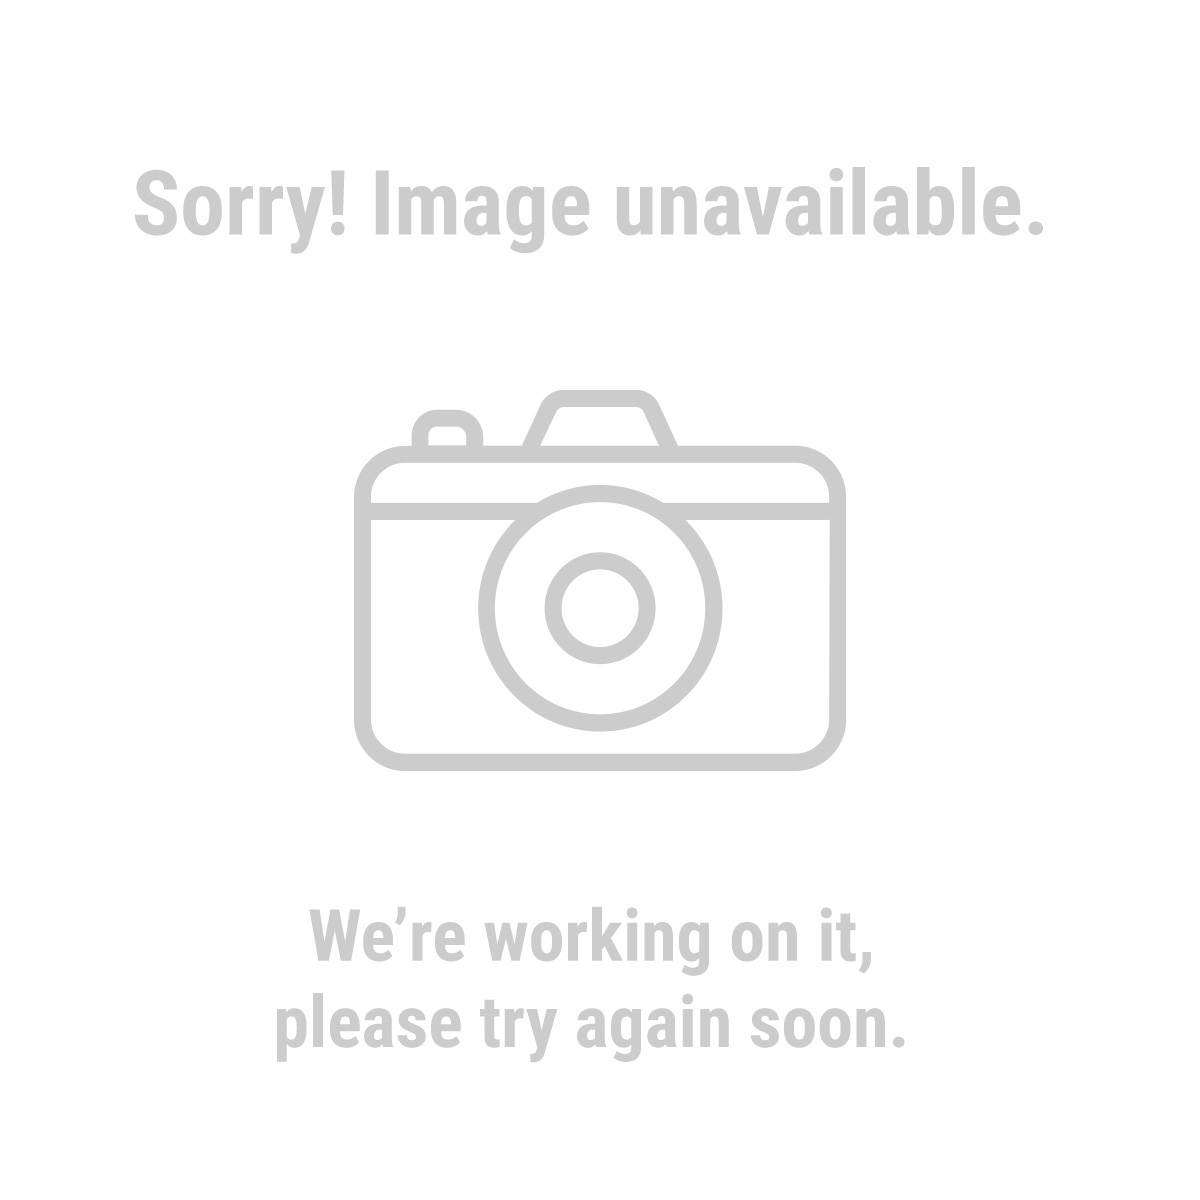 DRYMATE 65859 Maintenance Mat, Large